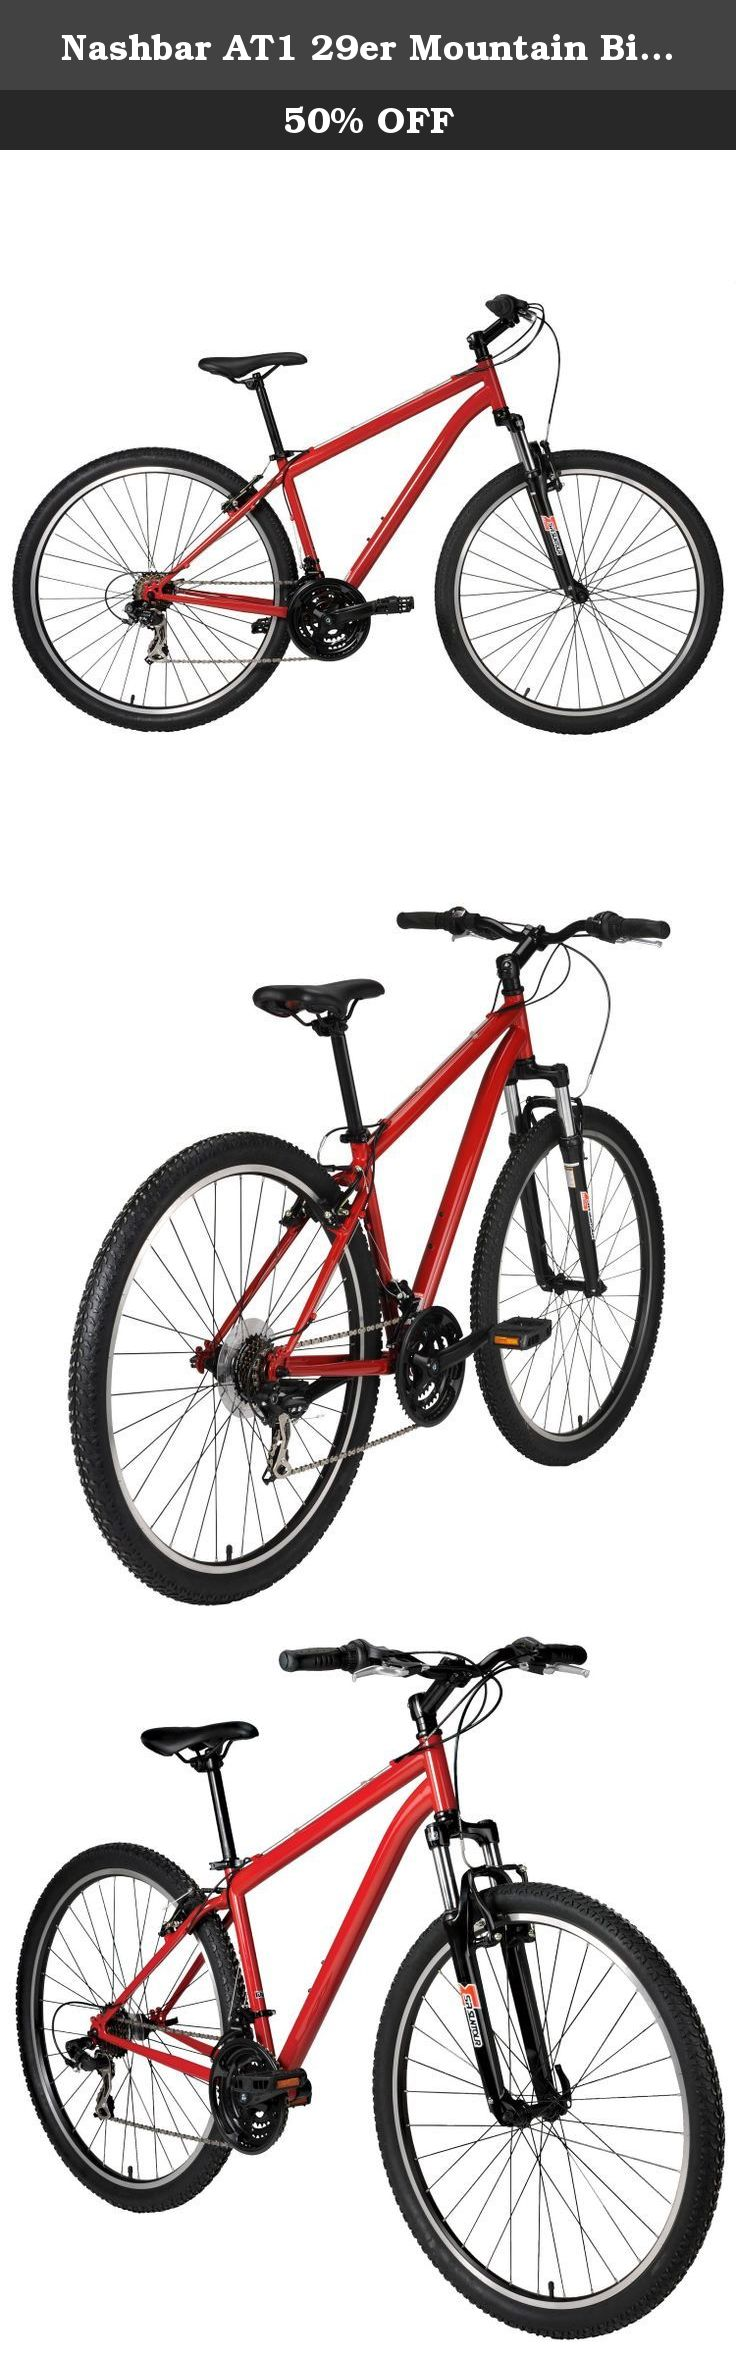 Nashbar At1 29er Mountain Bike 19 Inch If You Re Looking For A 29